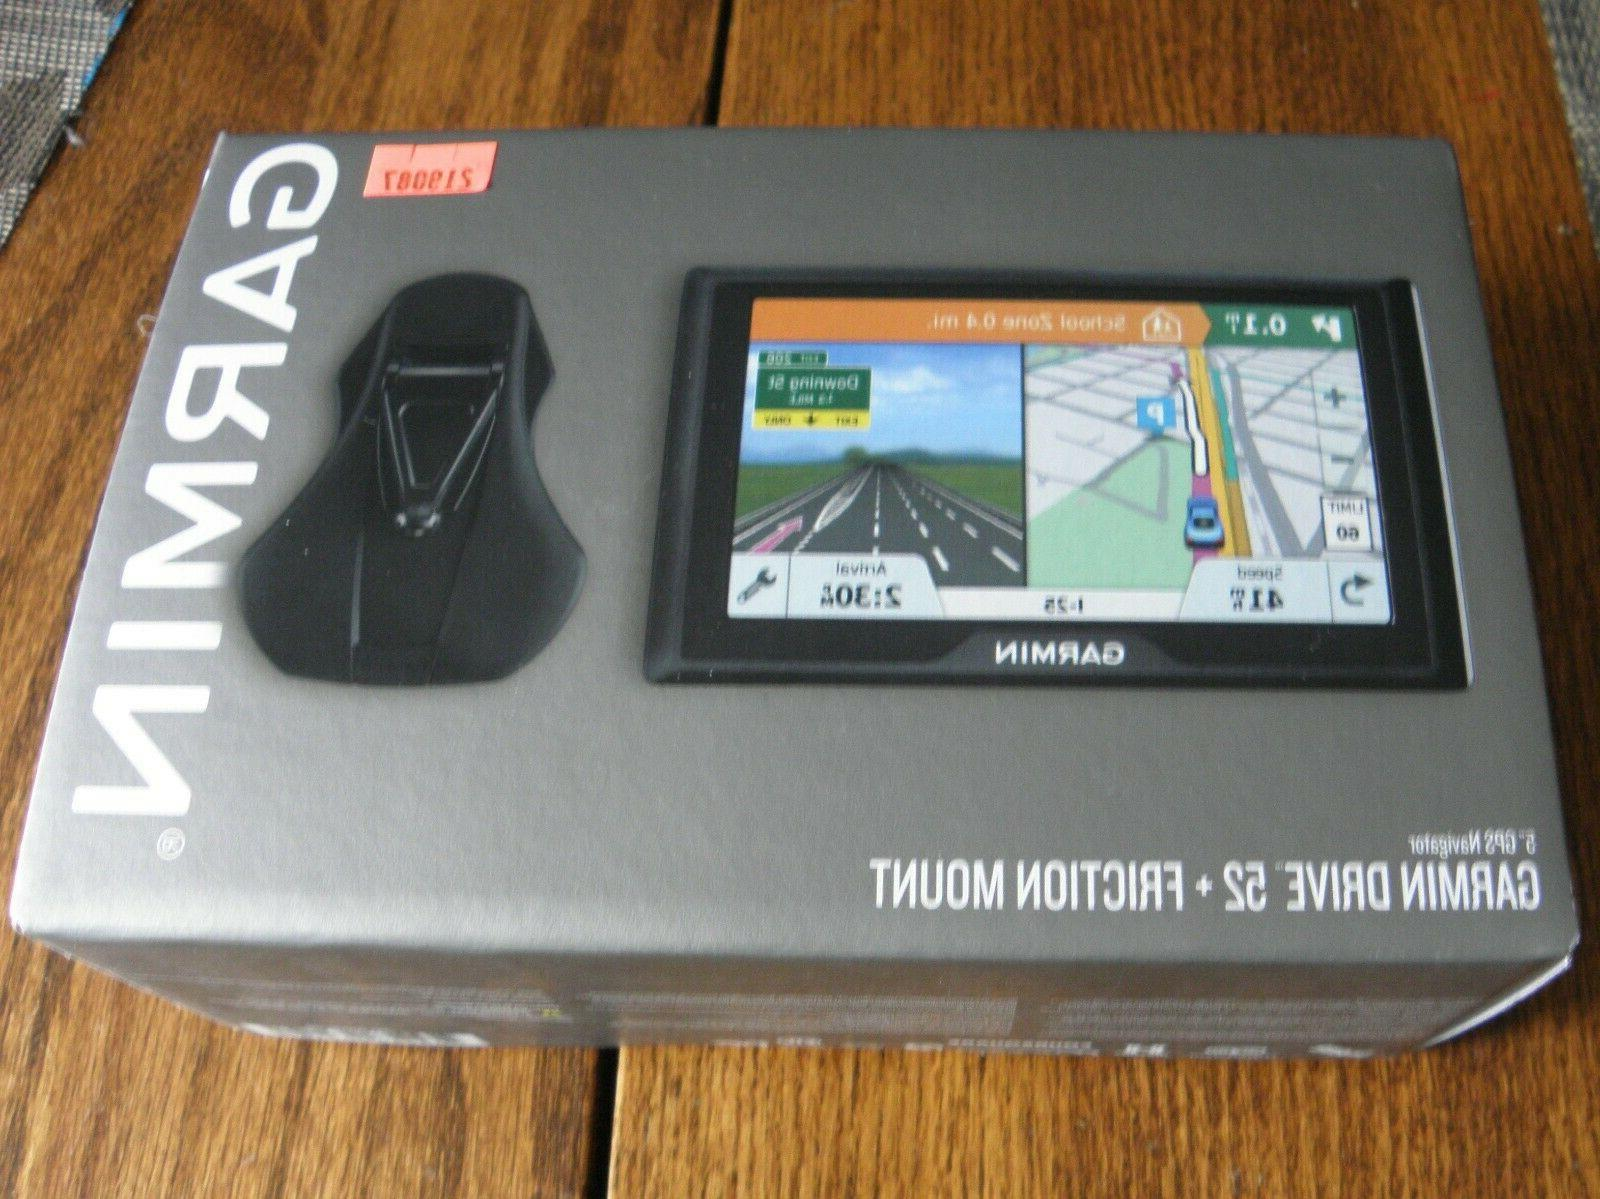 brand new drive 52 gps with carrying